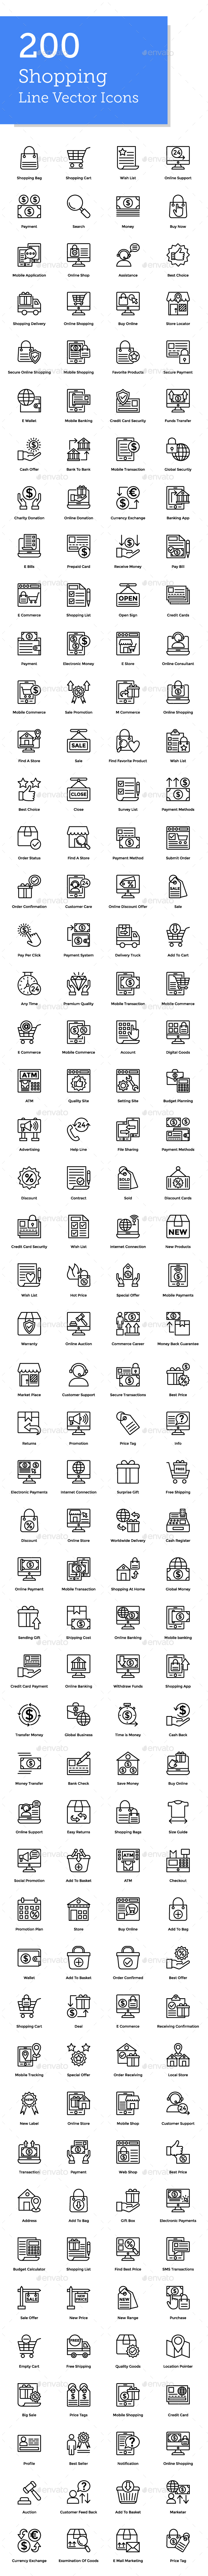 GraphicRiver 200 Shopping Line Icons 21179732